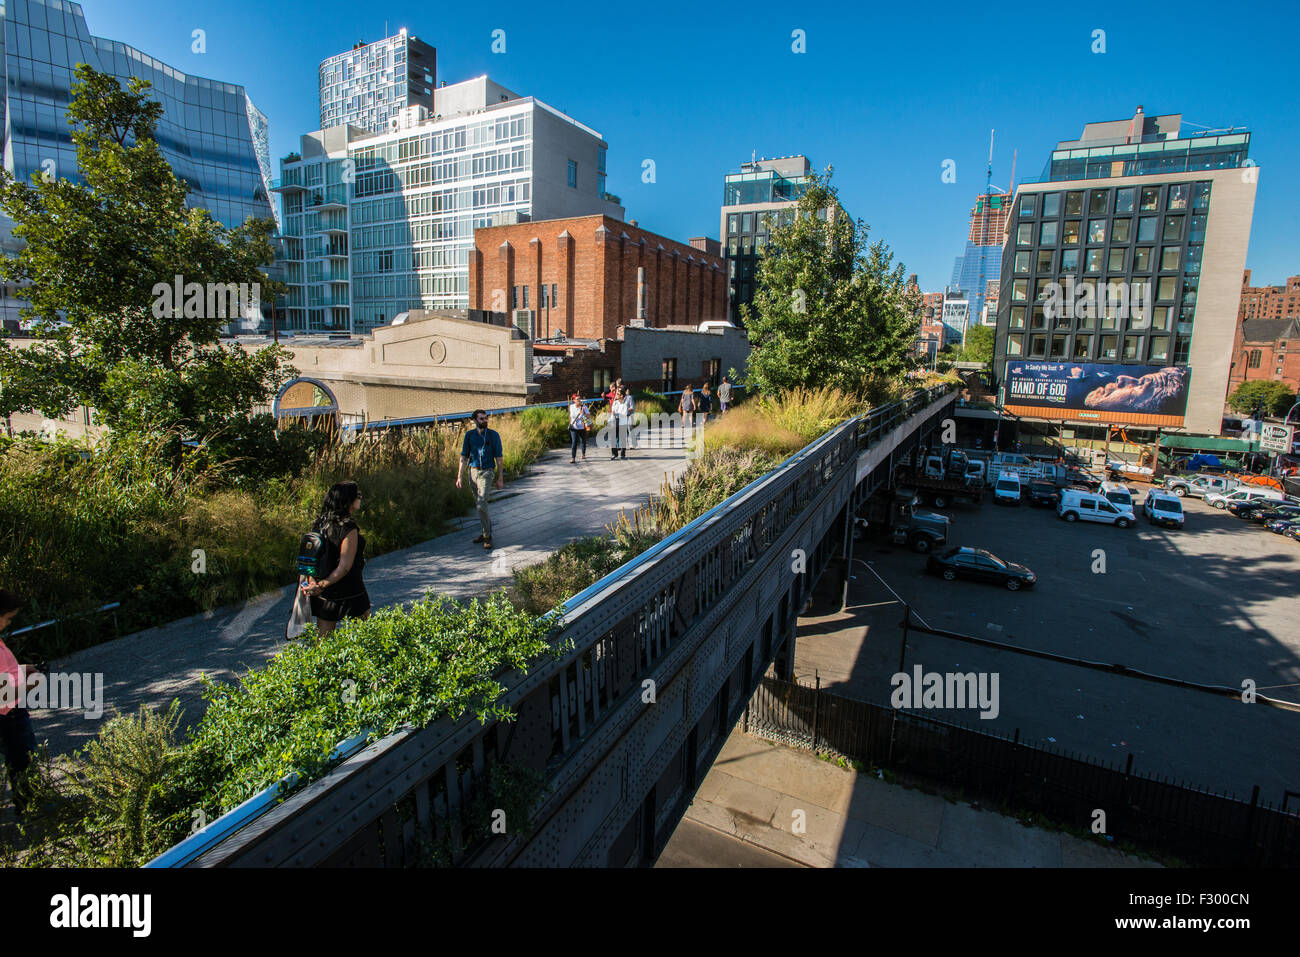 The urban elevated linear public park known as the High Line built on a disused elevated railway line September - Stock Image